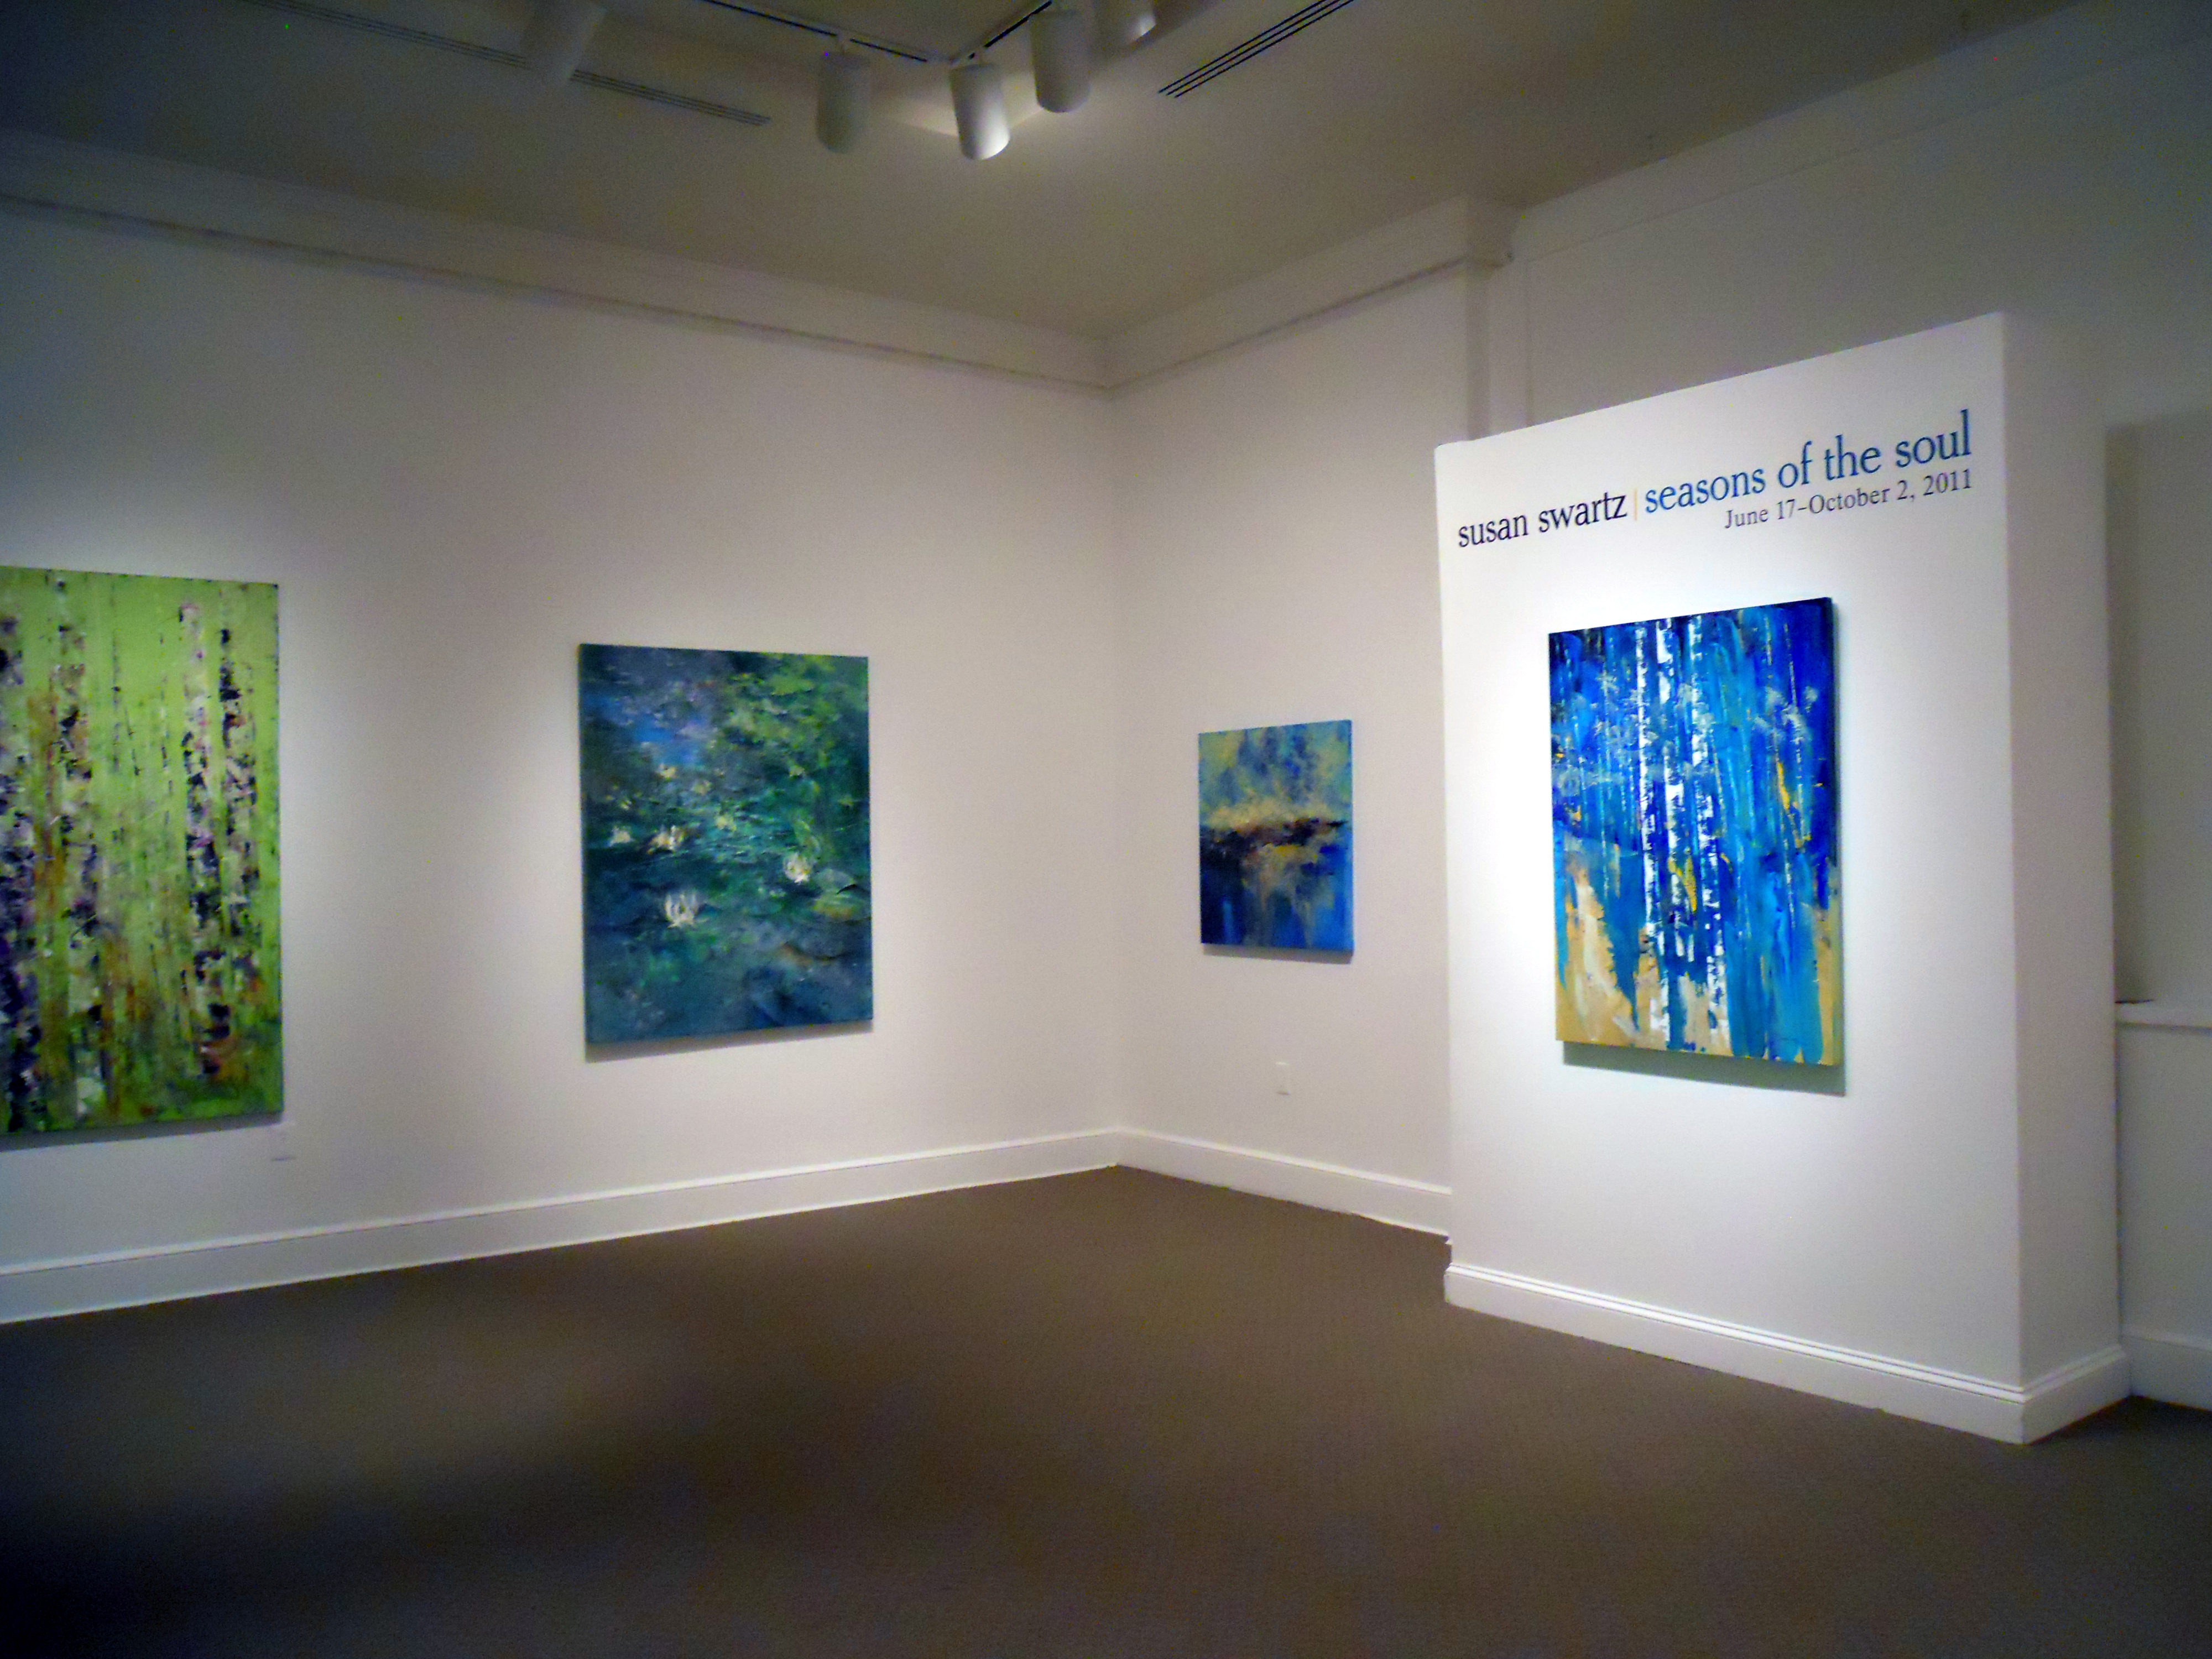 Installation view of Susan Swartz: Seasons of the Soul